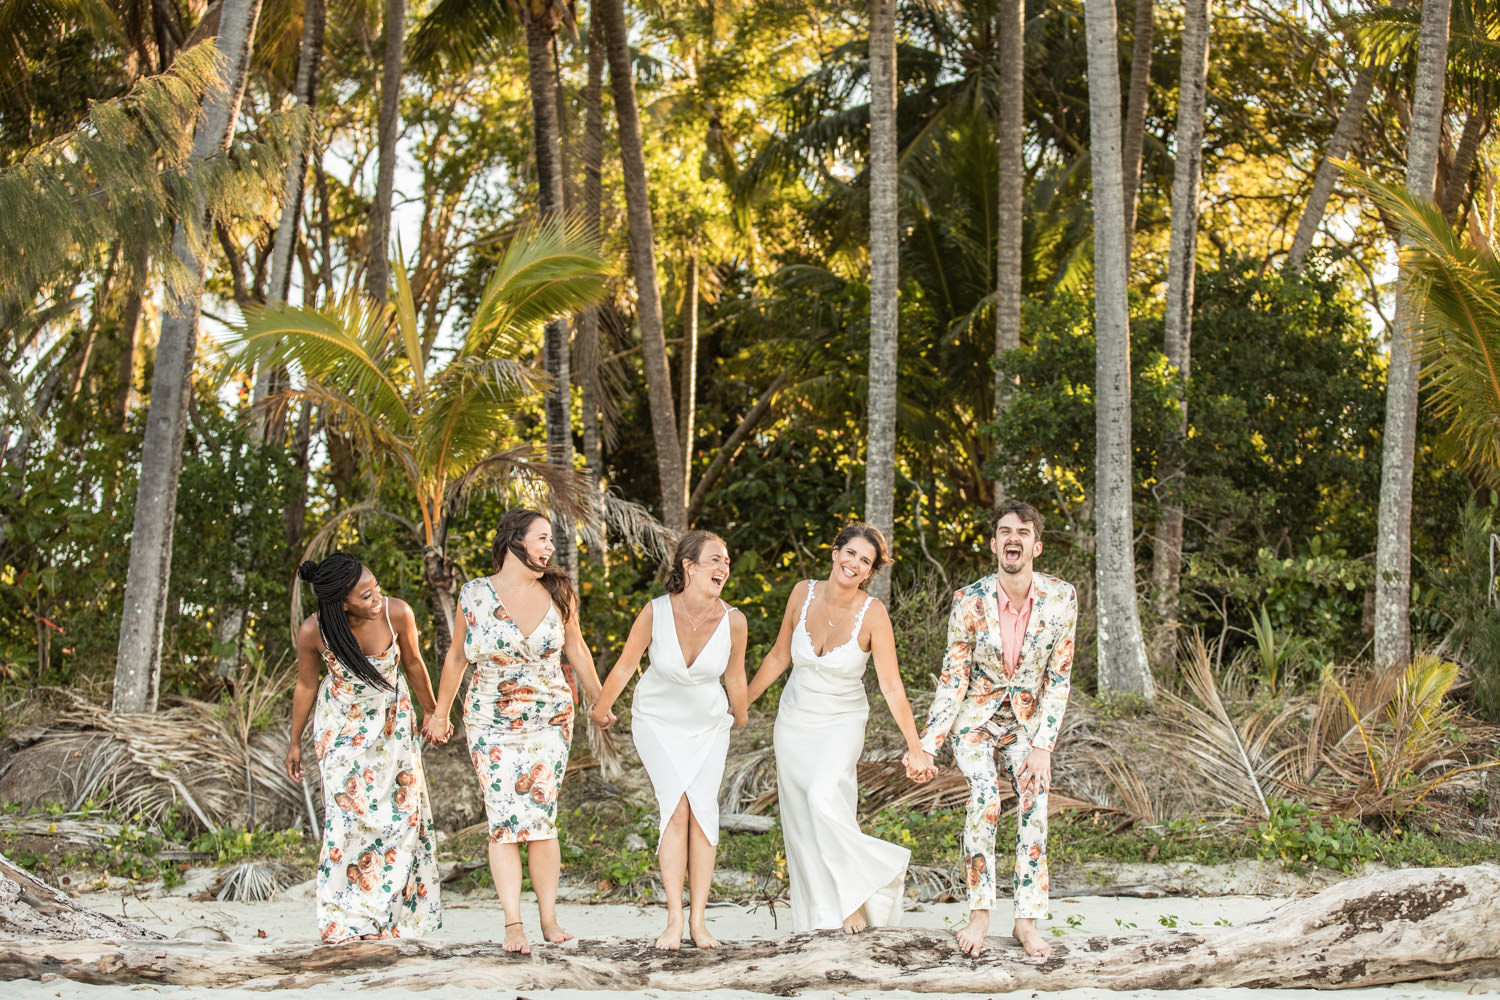 64 Port Douglas Wedding Photographer Catseye Productions 044A9181